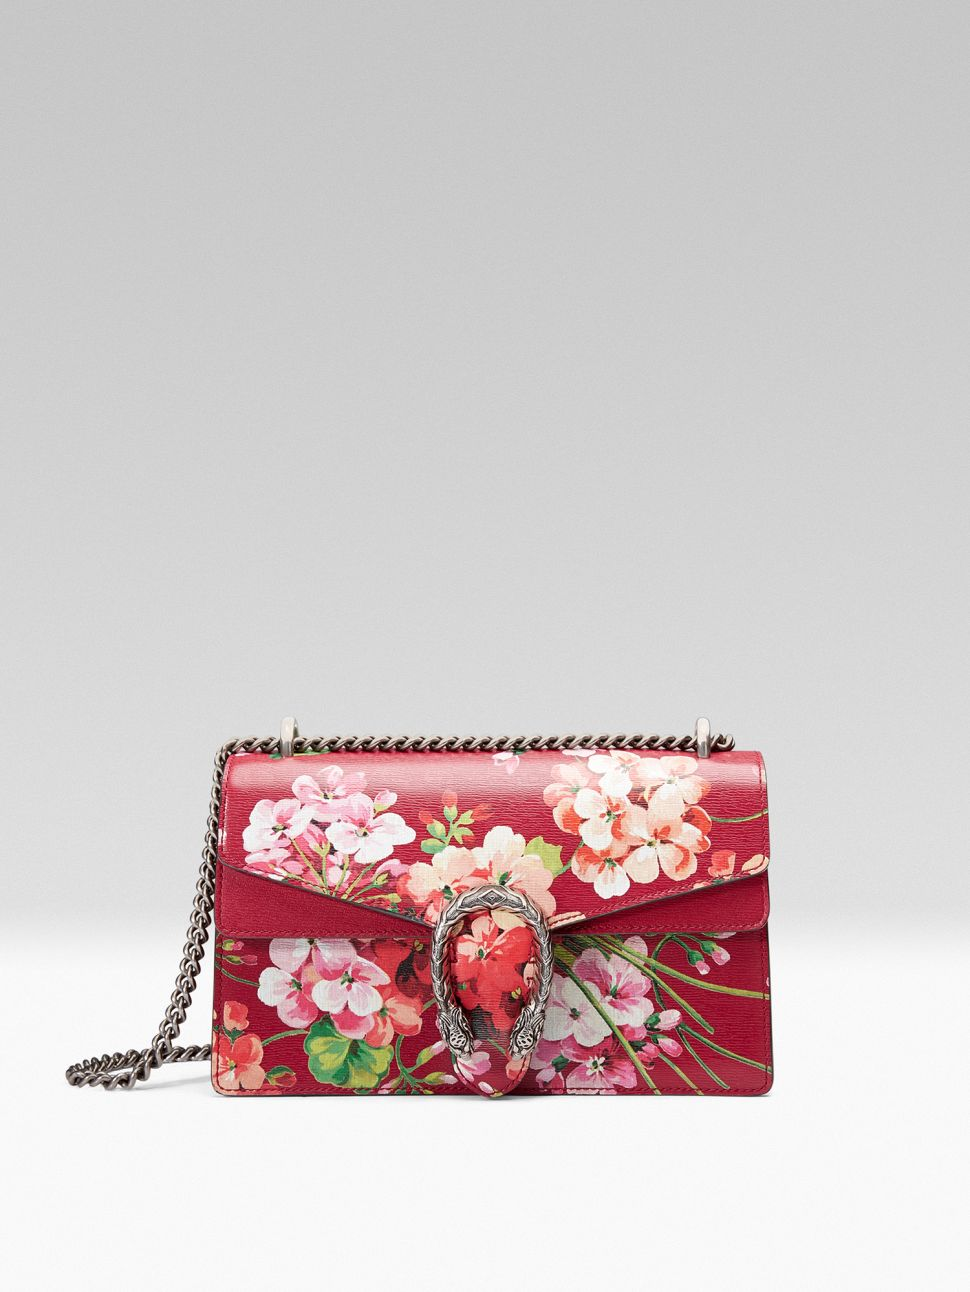 Gucci's New Bag Is a Sure Sign of Petal Power